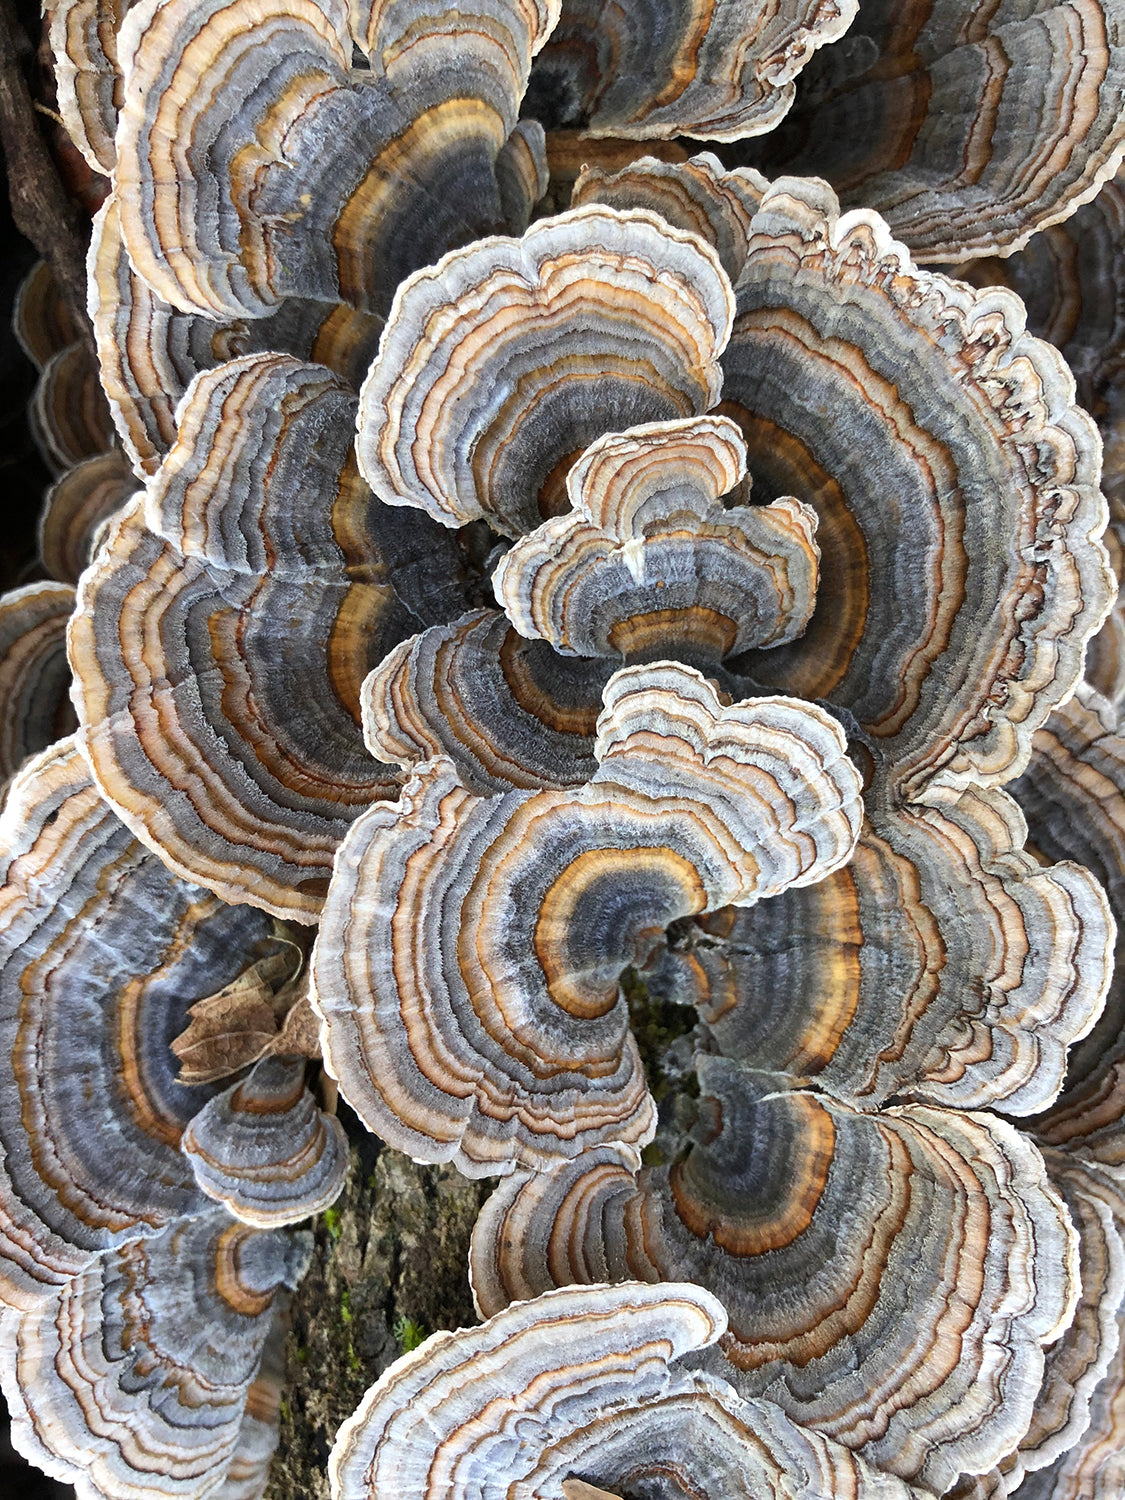 Smart phone photograph of colorful tree fungus on a fallen tree in the forests of North Carolina, shot by fine art photographer Keith Dotson.